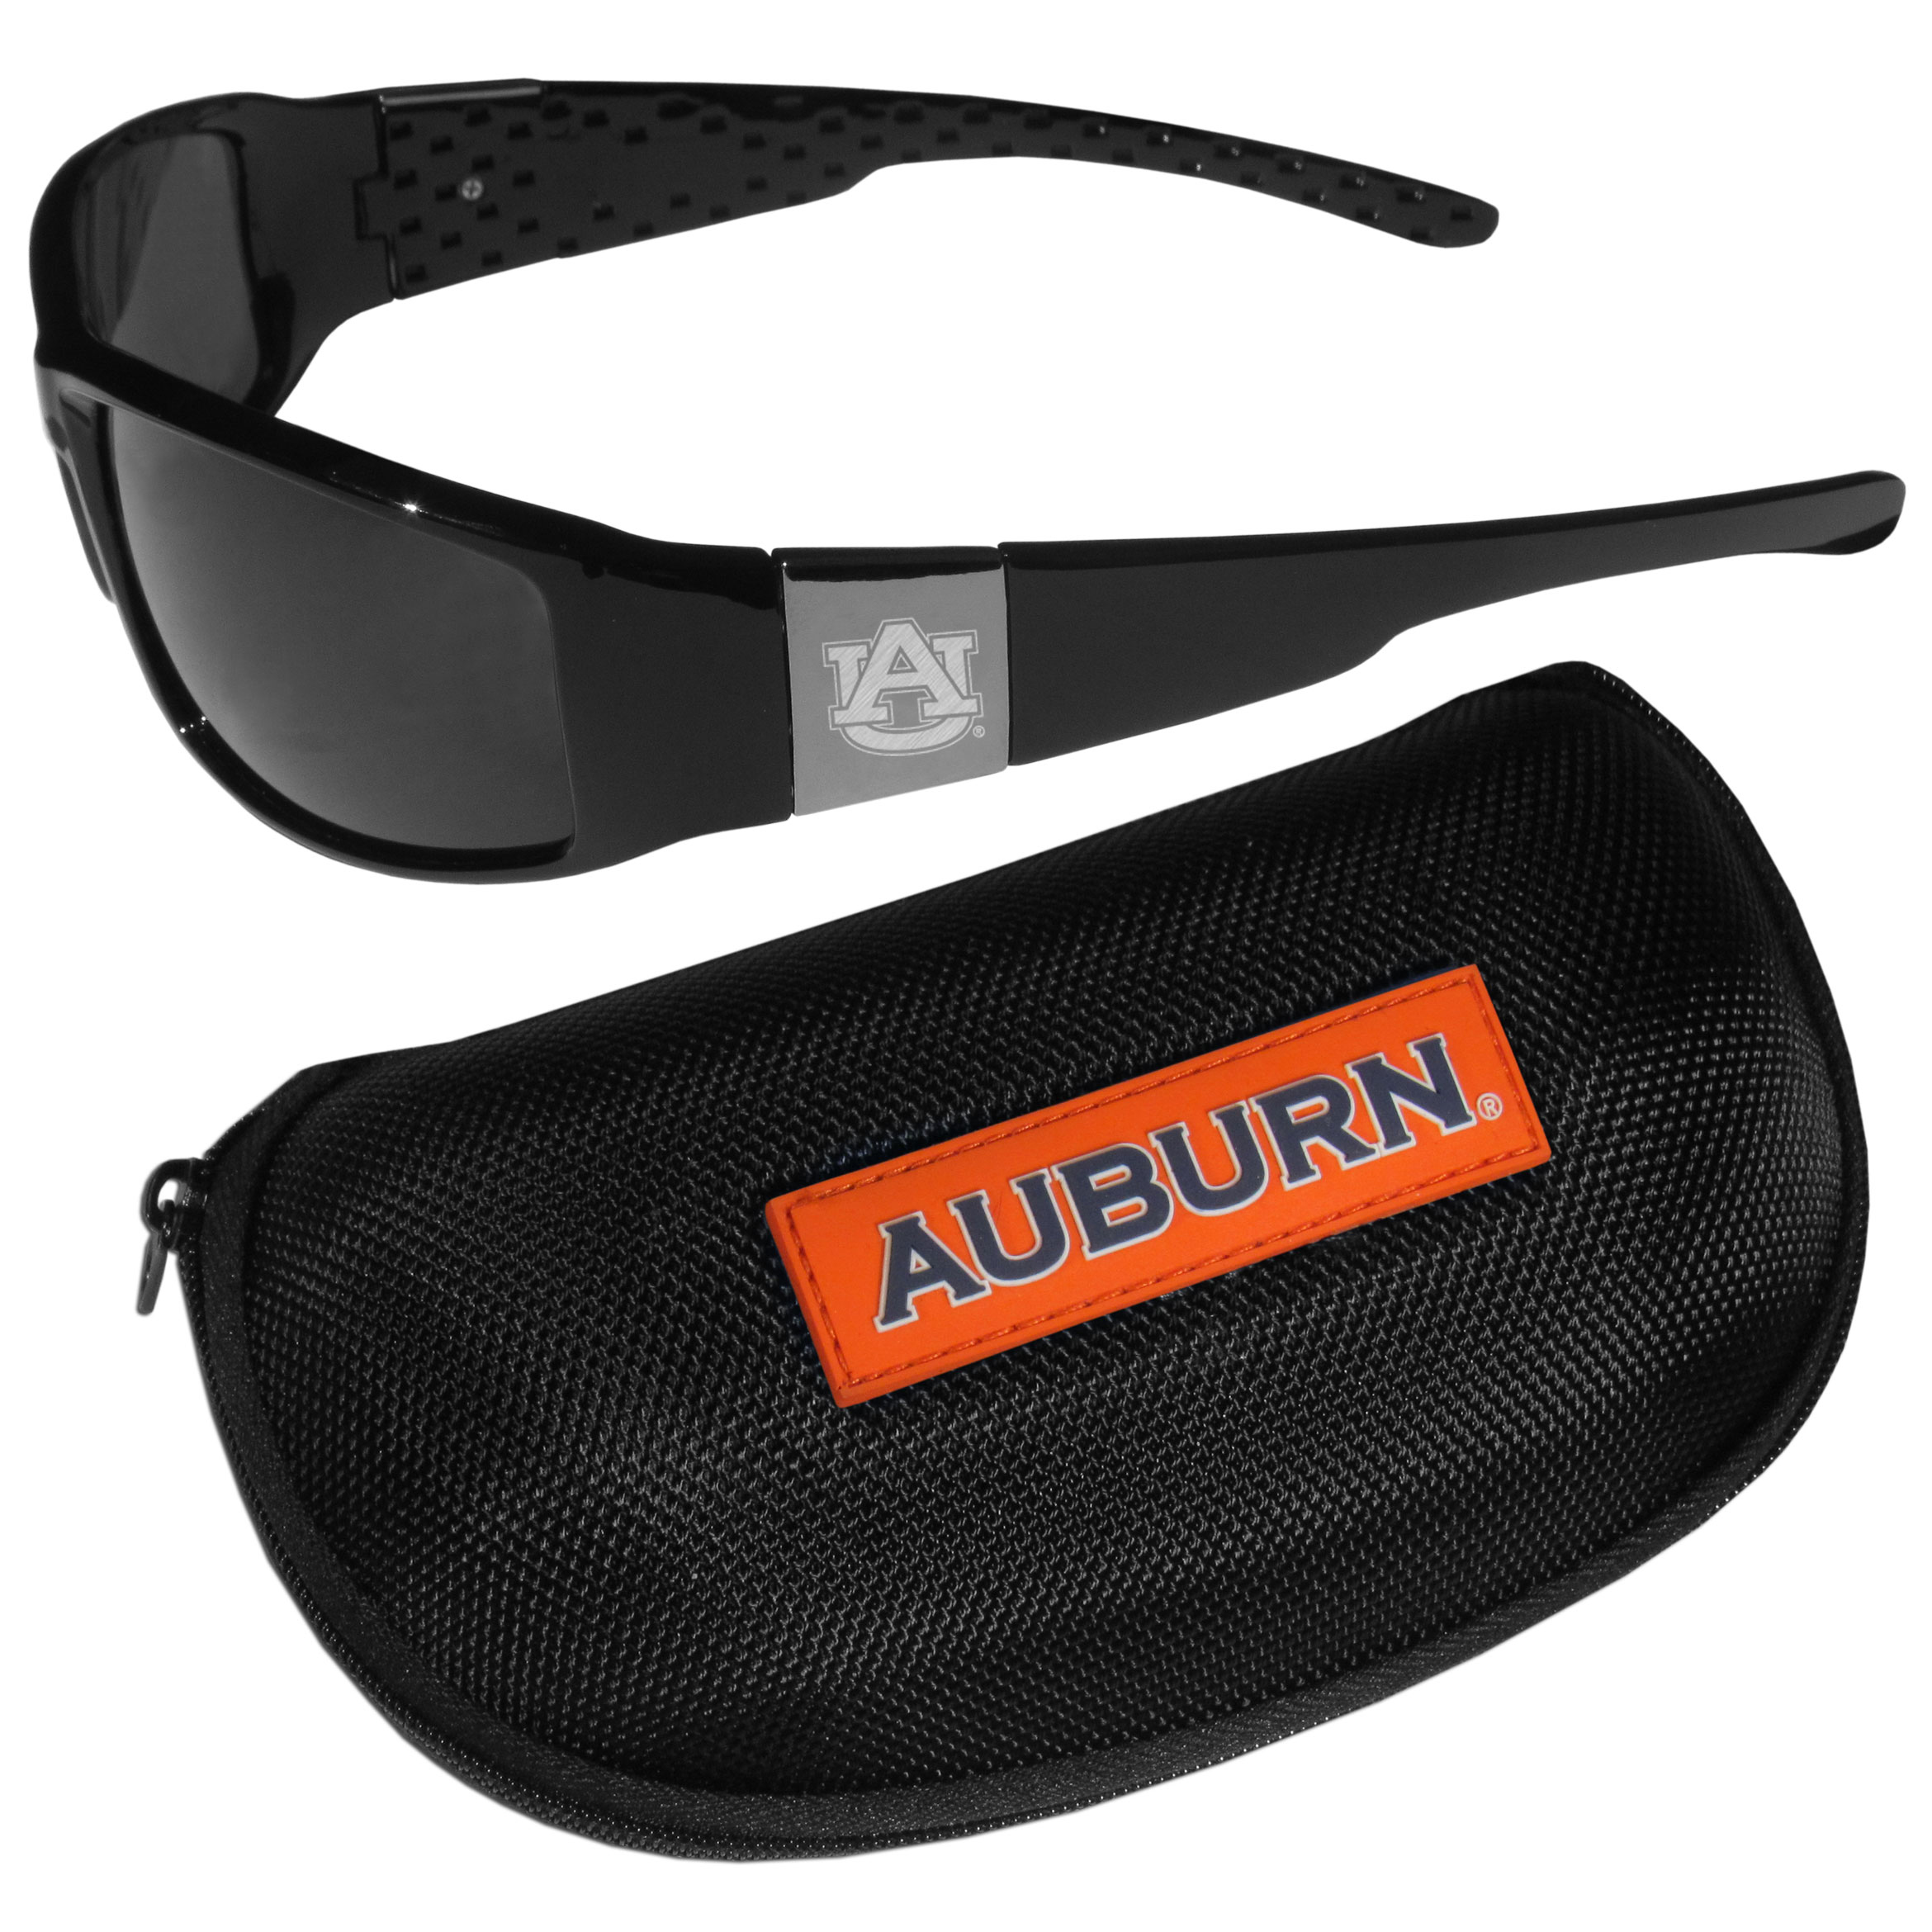 Auburn Tigers Chrome Wrap Sunglasses and Zippered Carrying Case - These designer inspired frames have a sleek look in all black with high-polish chrome Auburn Tigers shields on each arm with an etched logo. The shades are perfect any outdoor activity like; golfing, driving, hiking, fishing or cheering on the team at a tailgating event or an at home game day BBQ with a lens rating of 100% UVA/UVB for maximum UV protection. The high-quality frames are as durable as they are fashionable and with their classic look they are perfect fan accessory that can be worn everyday for every occasion. The shades come with a zippered hard shell case to keep your sunglasses safe.